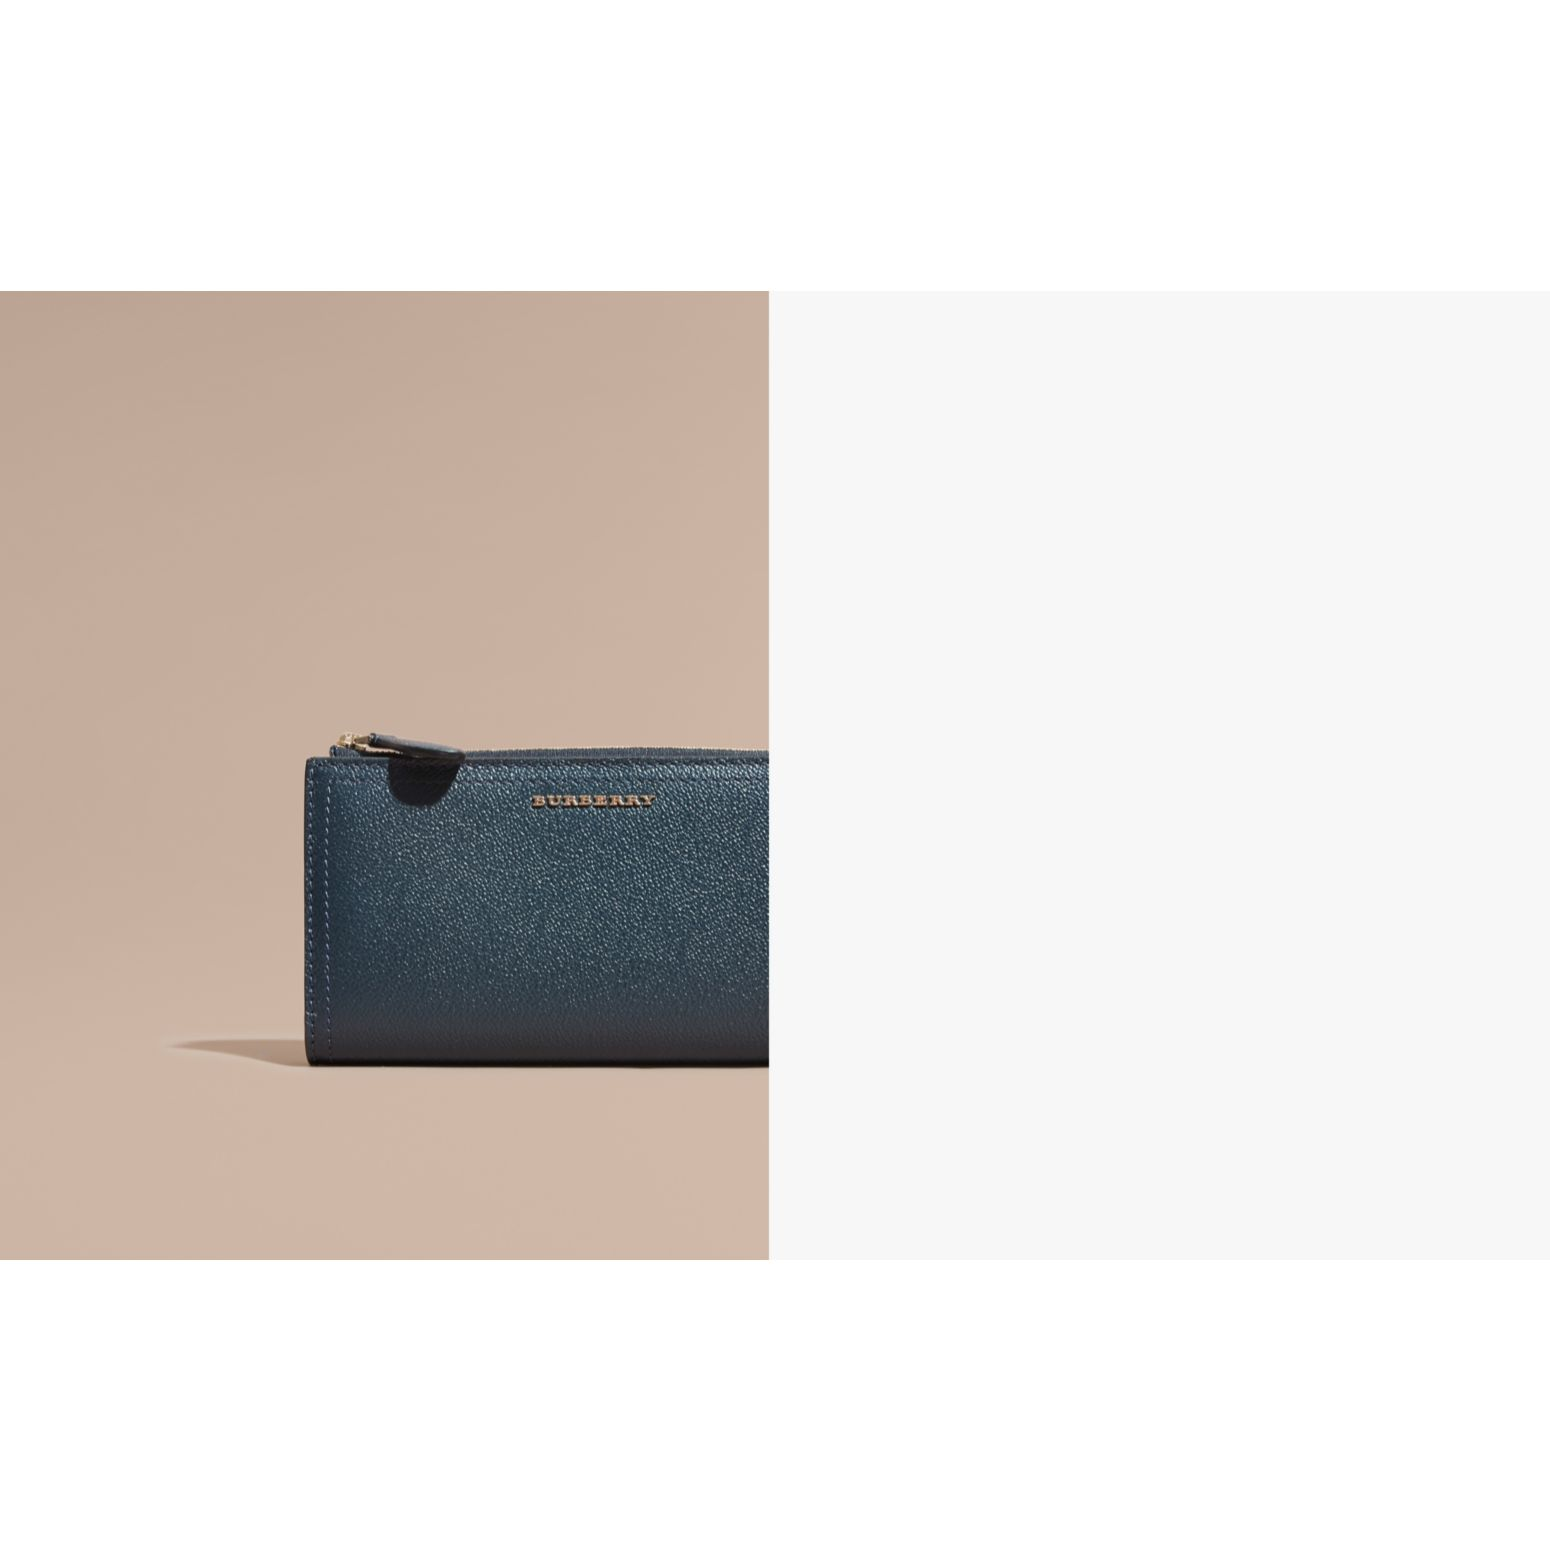 Grainy Leather Ziparound Wallet in Blue Carbon - Women | Burberry - gallery image 1